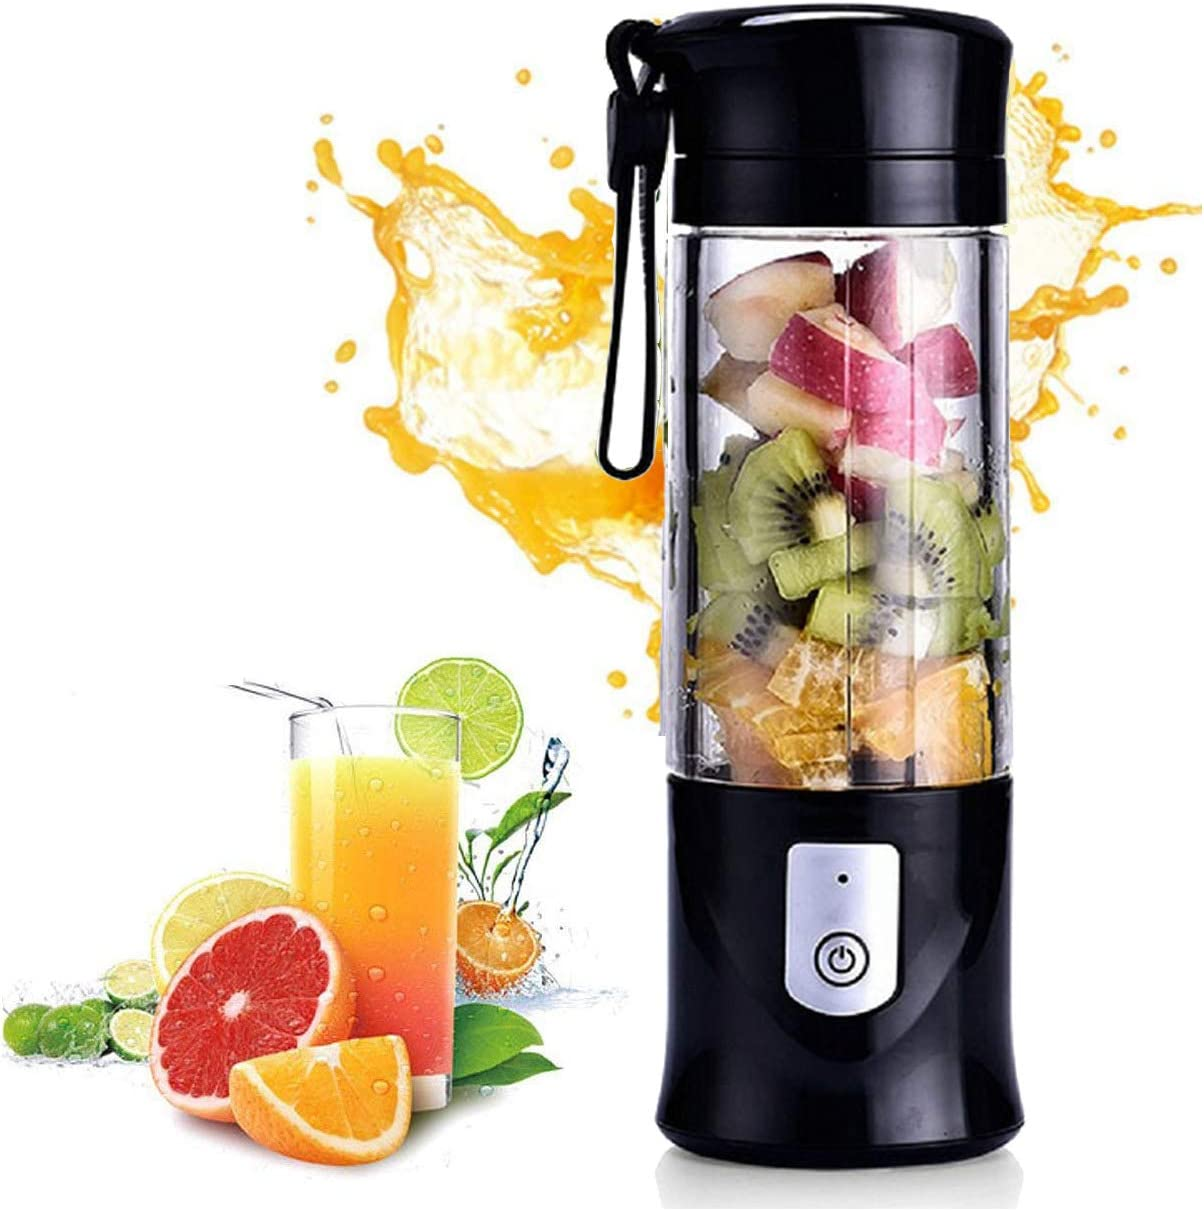 Portable Blender, Cordless Mini Personal Blender Juicer Cup, Single Serve Fruit Mixer, Small Travel Blender for Shakes and Smoothies, with 4000mAh USB Rechargeable Battery, 420ml, BPA-Free (Black)